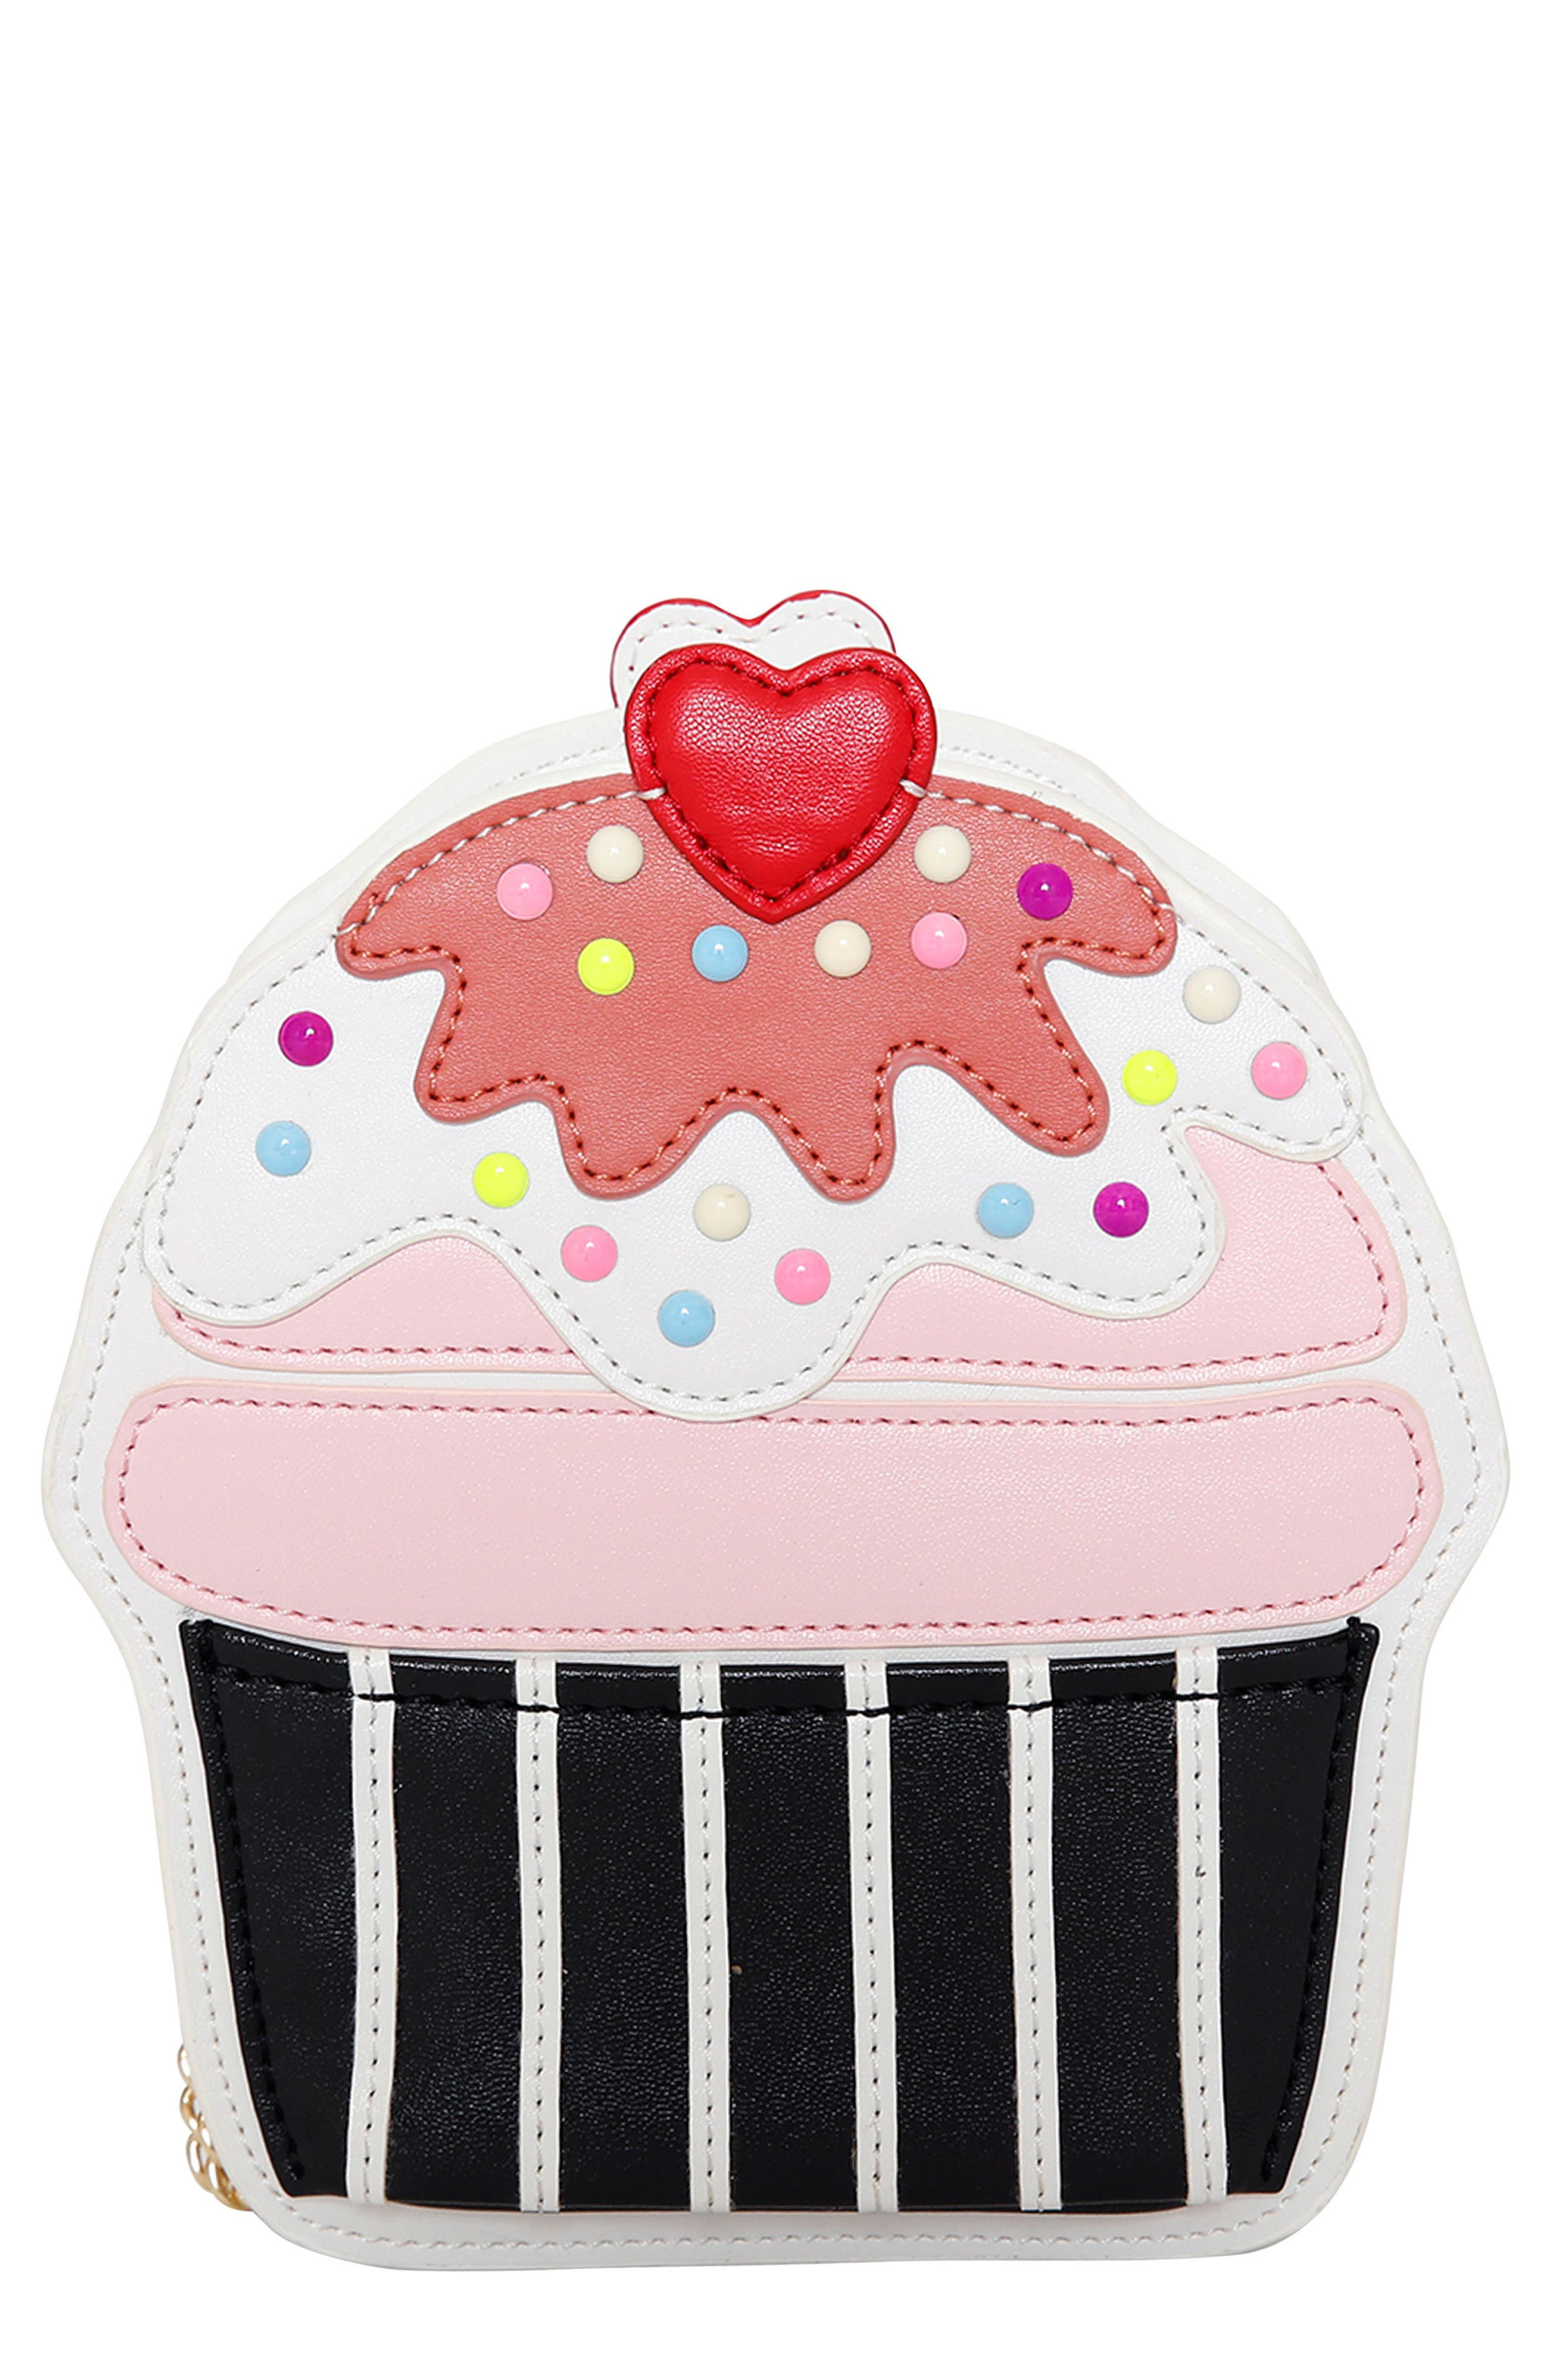 Cupcake Crossbody Bag,                             Main thumbnail 1, color,                             White Multi